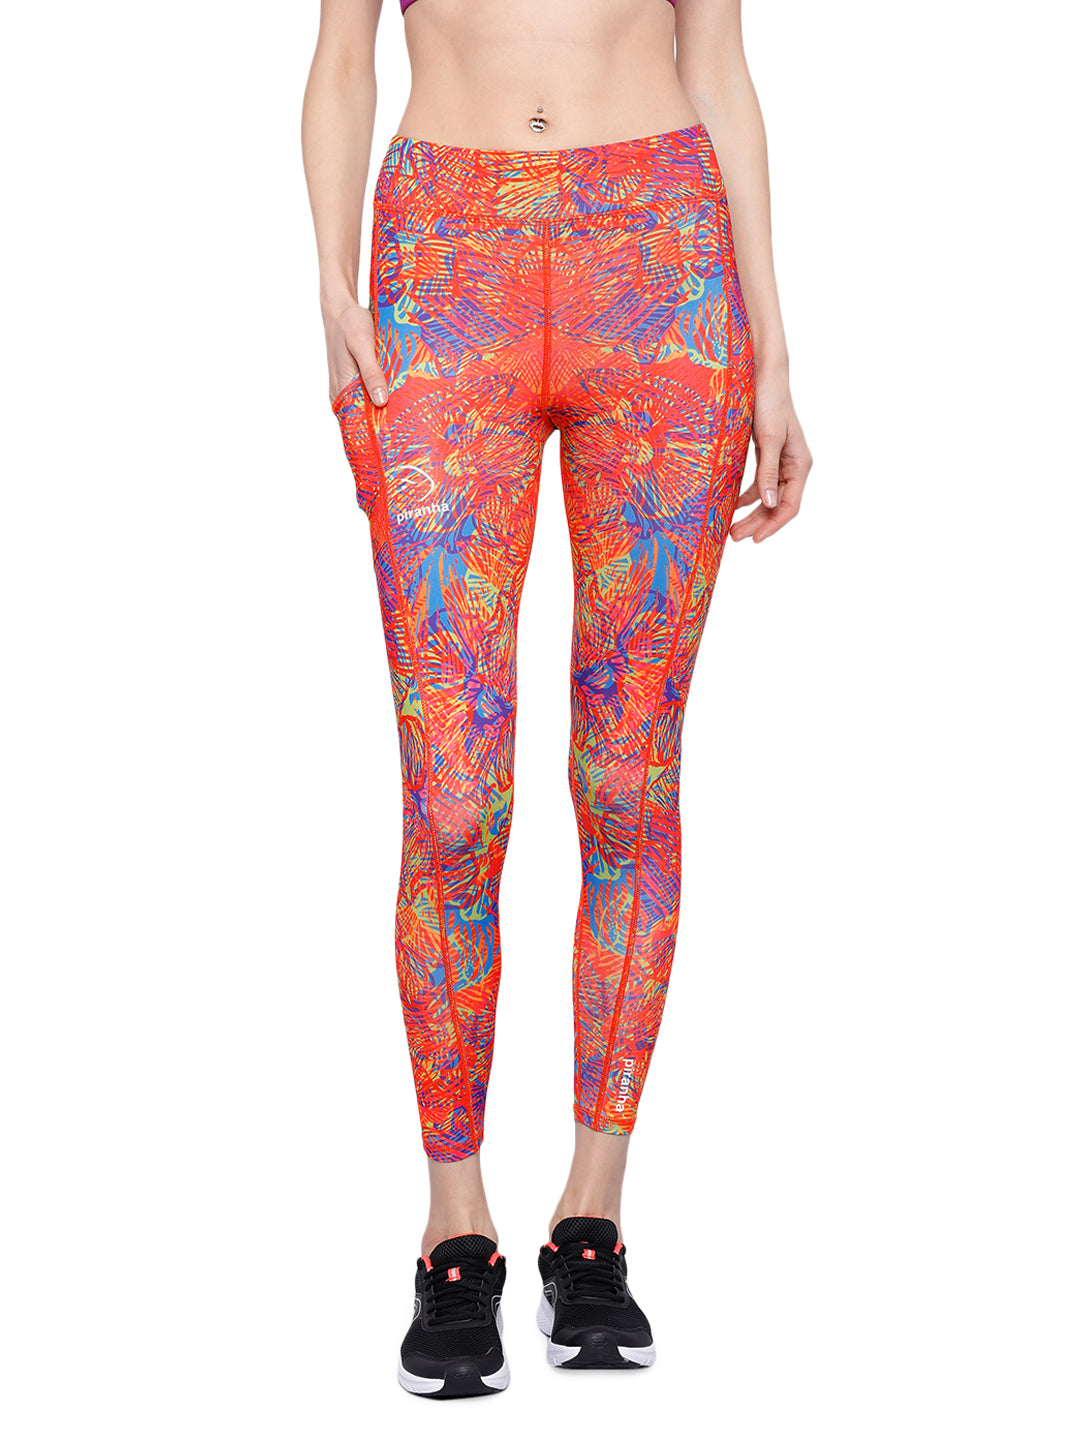 Piranha Women's Printed Yoga And Running Pants - YP185